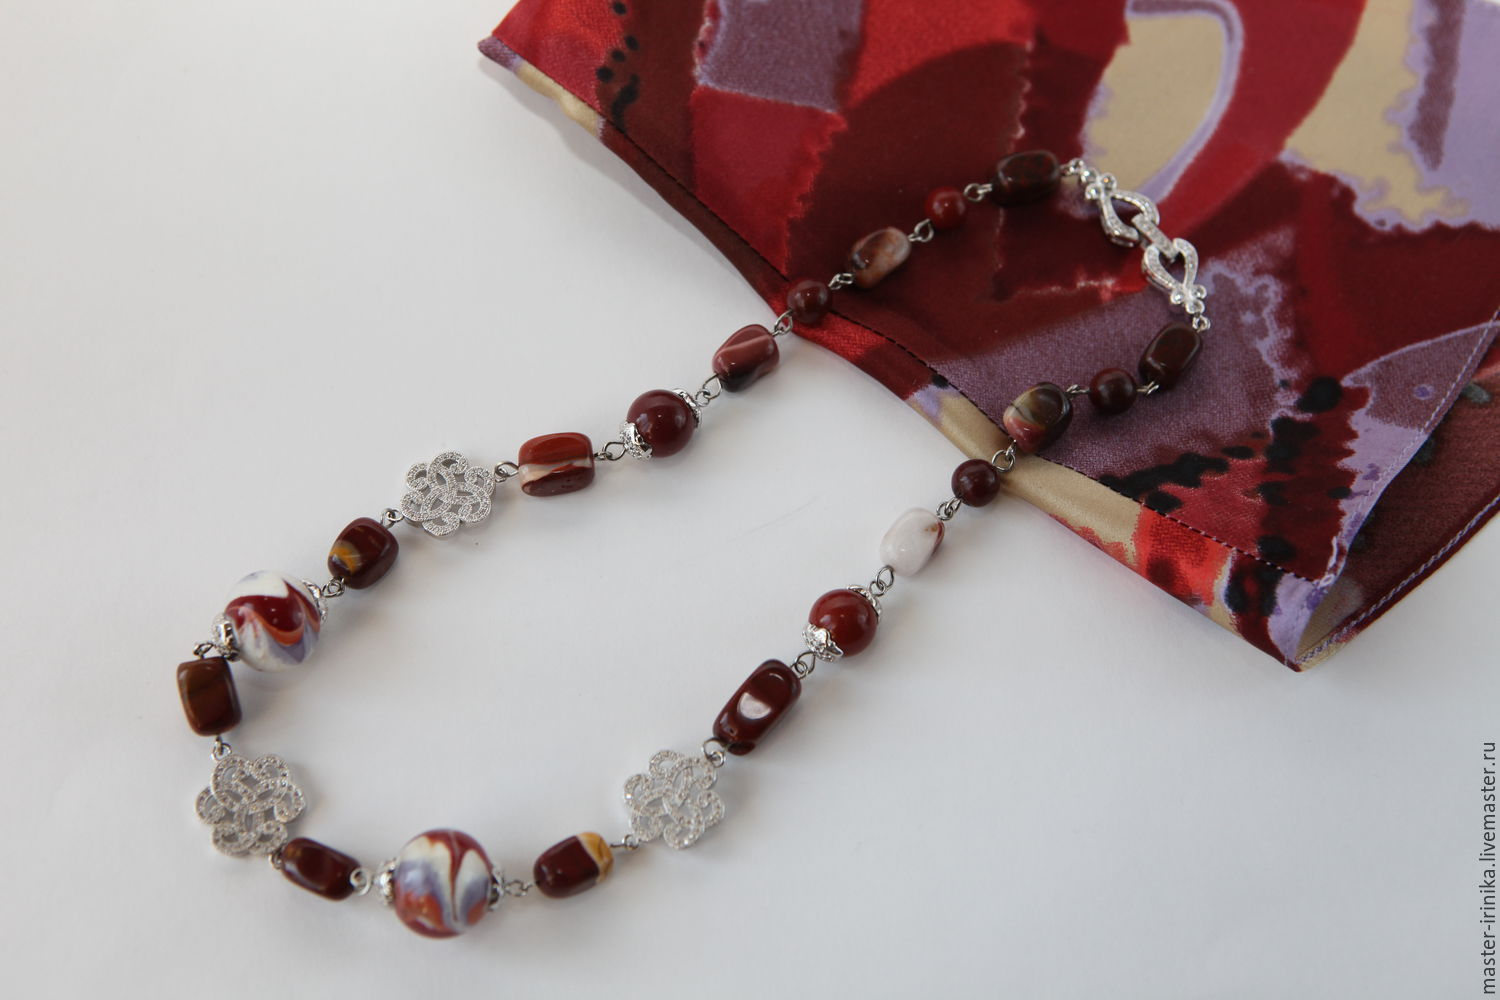 Beads Jasper beads in silver. Iranica. Workshop images Irina N. Jewelry crafted.